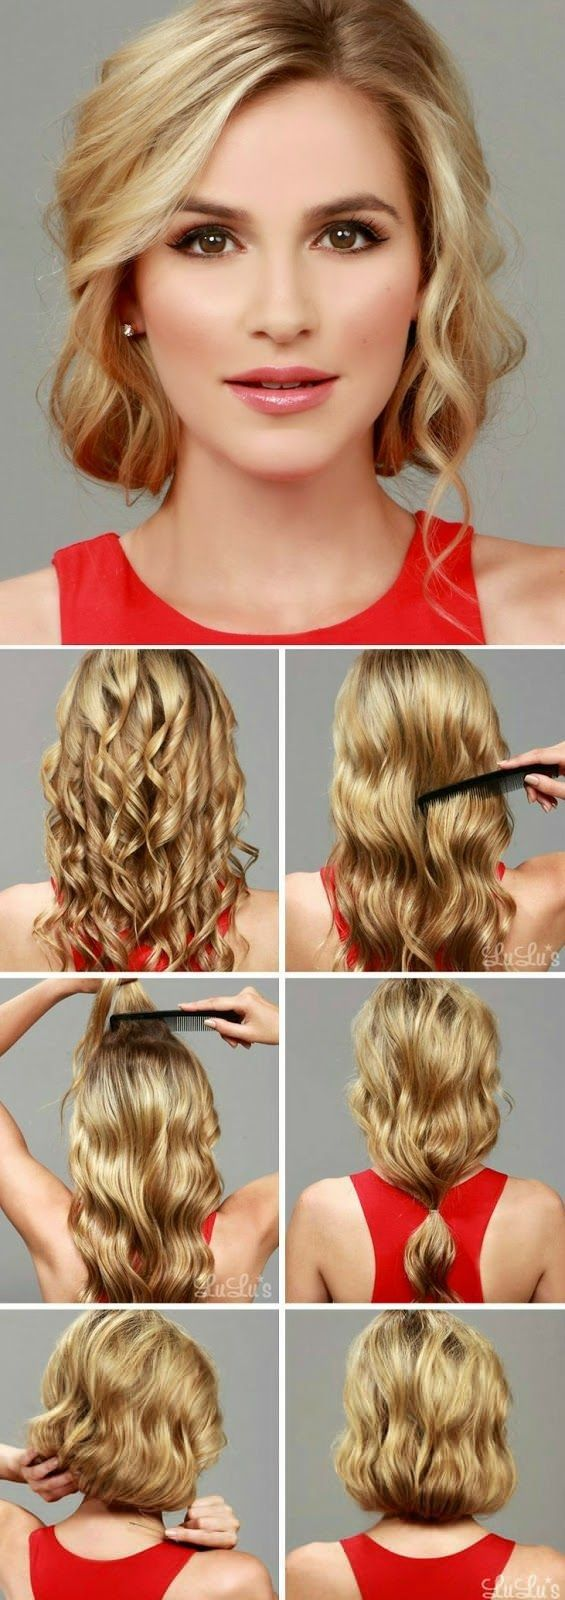 17 Best ideas about Coiffure Facile Et Rapide on Pinterest | Video ...